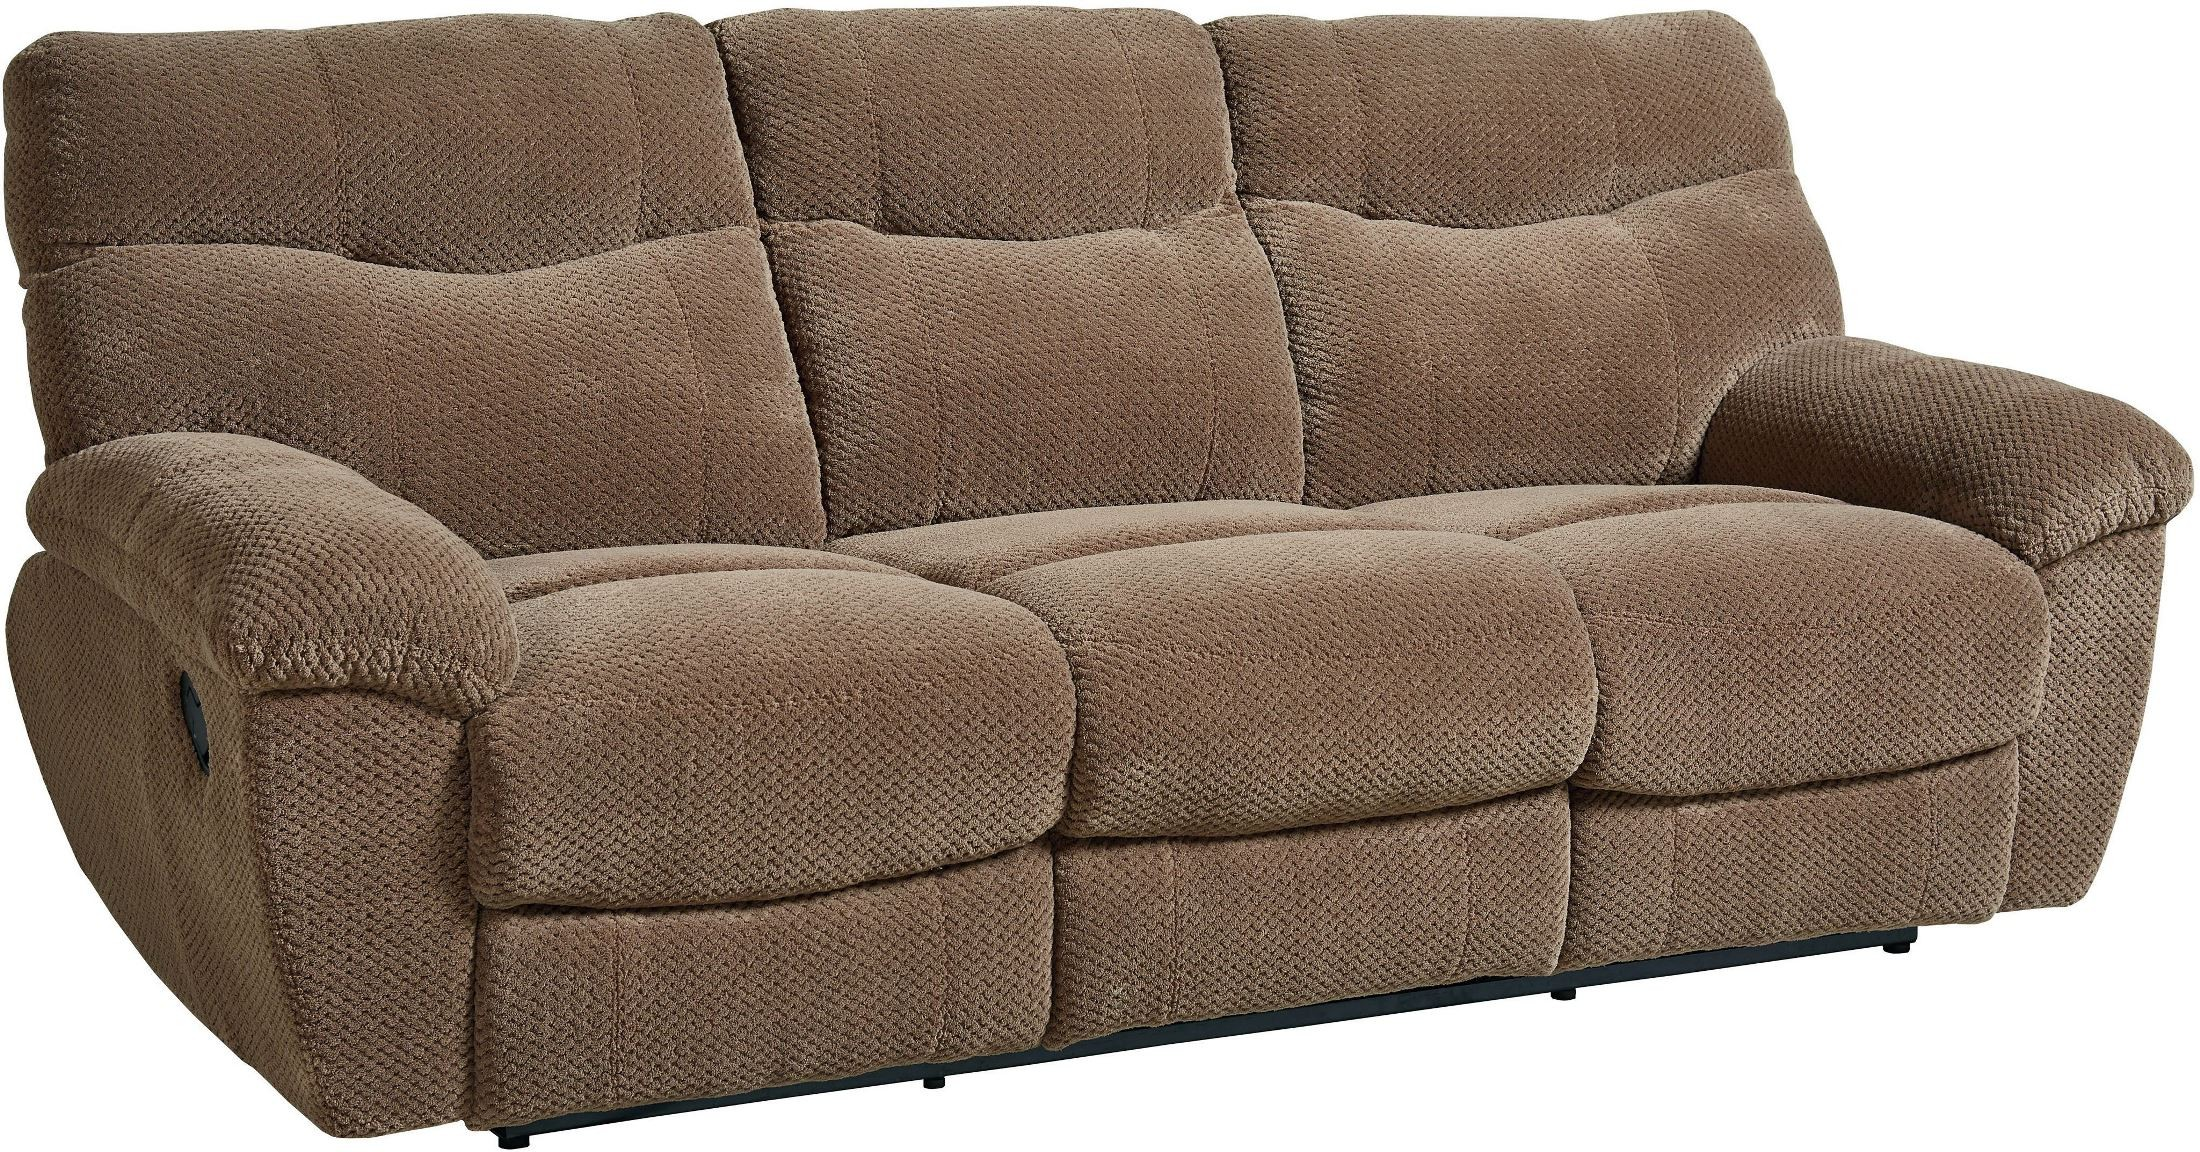 Sofa Taupe Escapade Taupe Brown Reclining Sofa From Standard